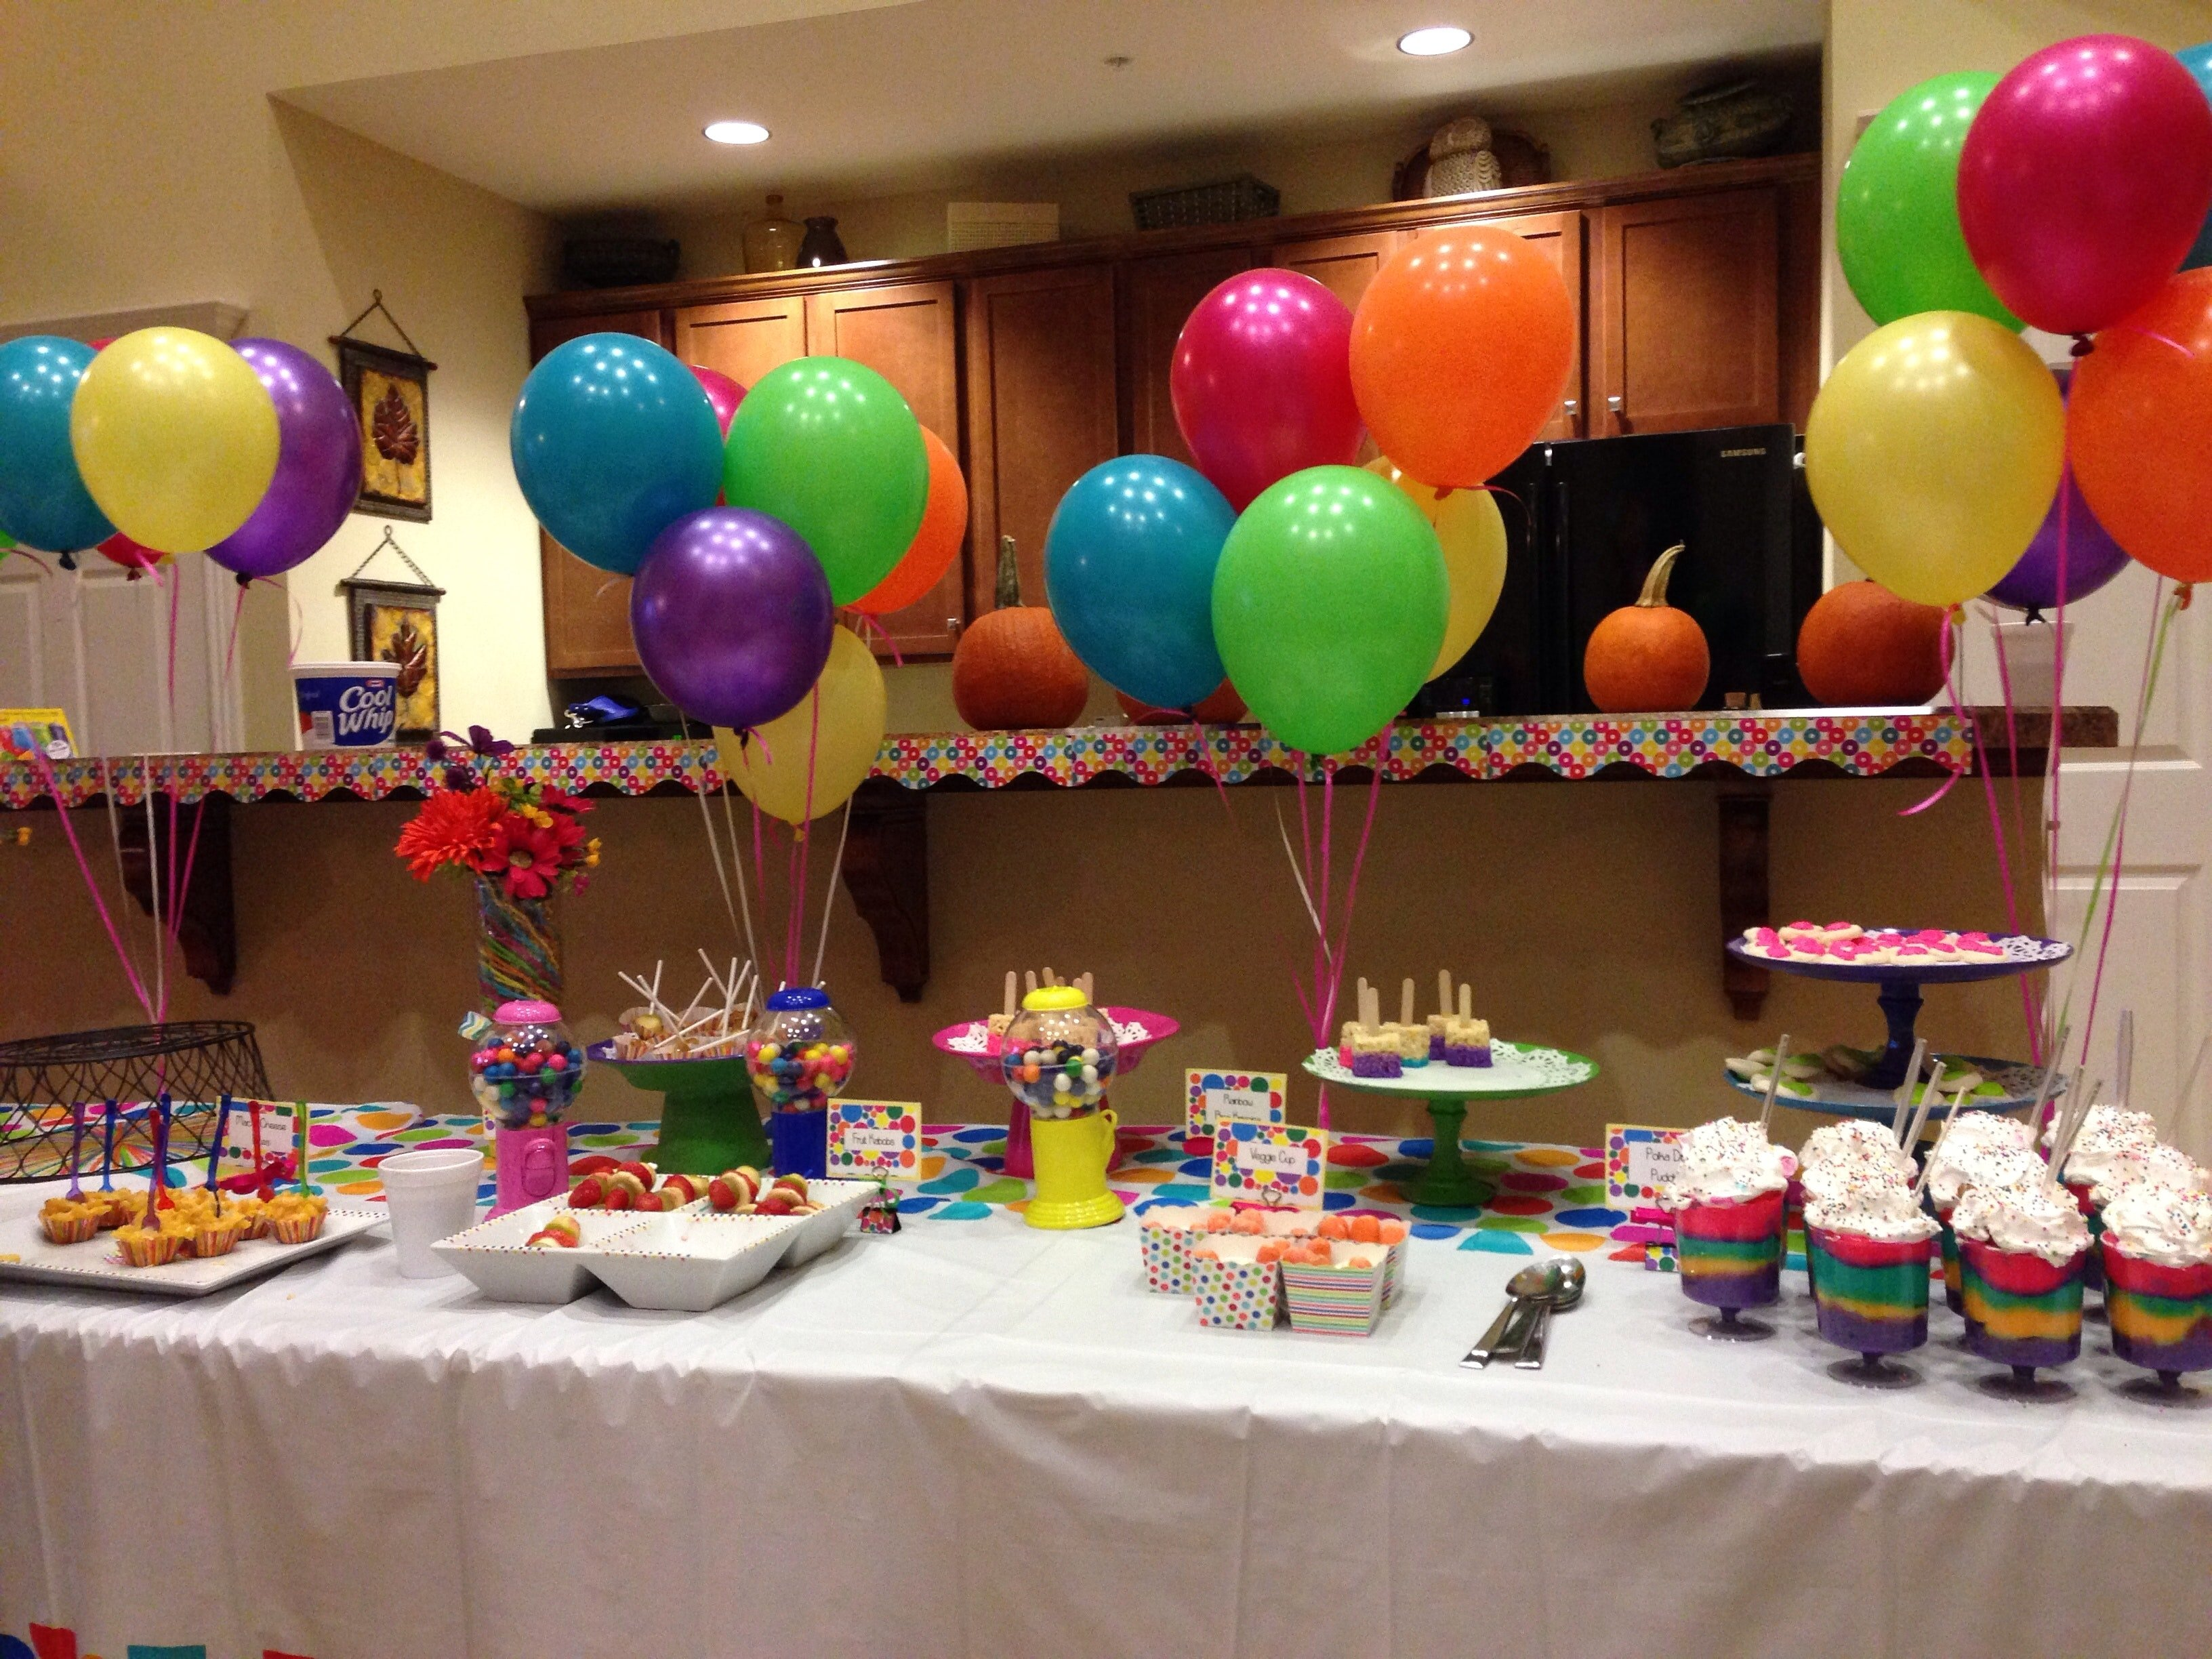 10 Lovable Birthday Party Ideas Kansas City Themes 2 Year Old On